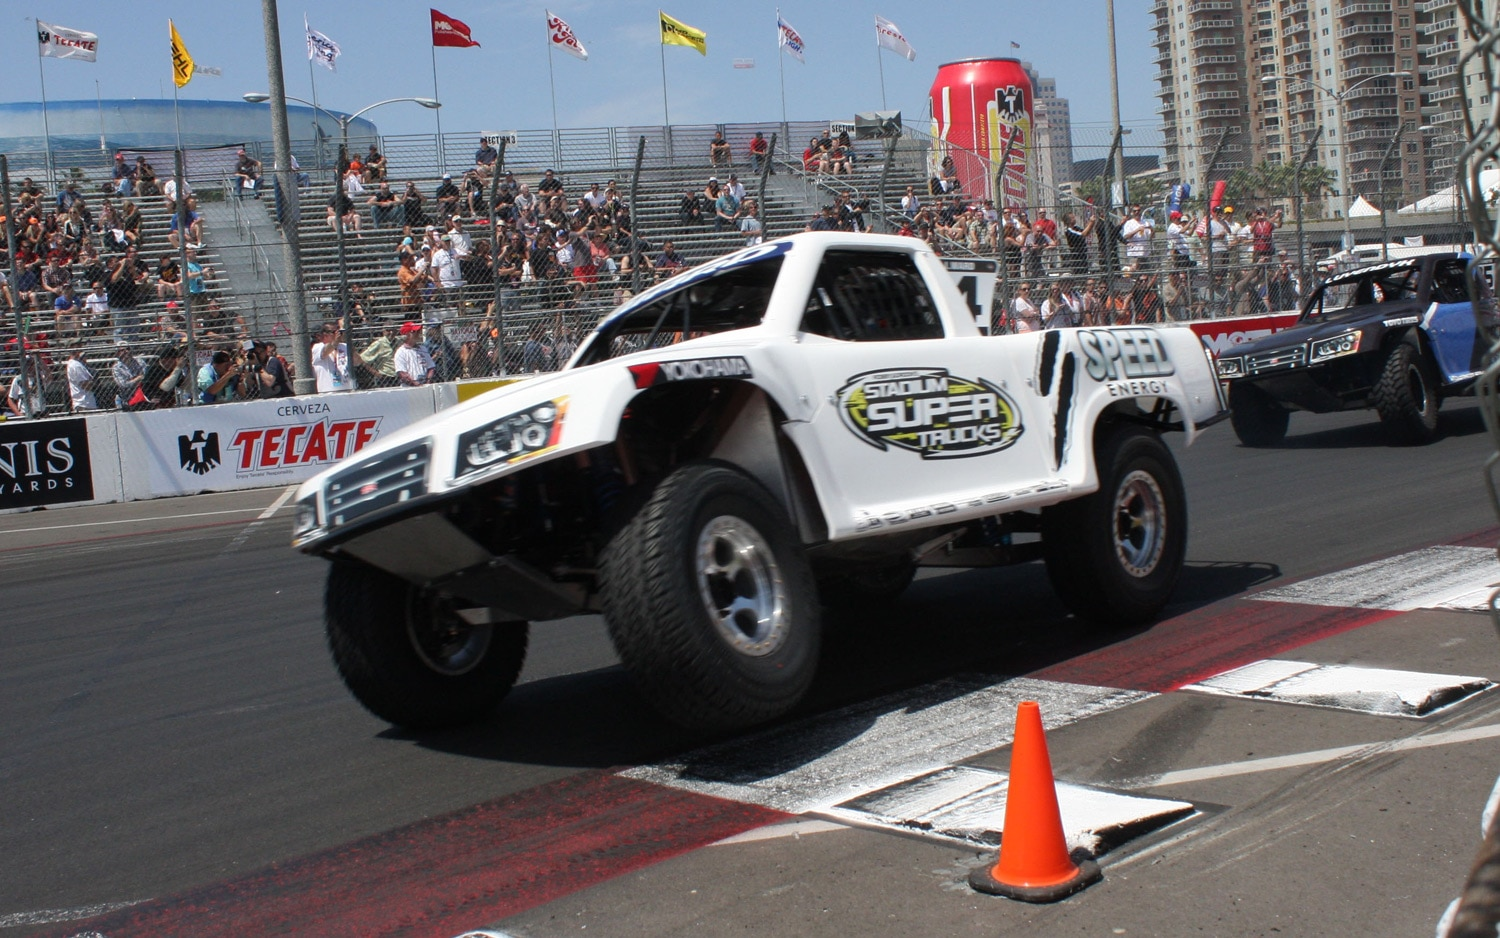 1304OR 34+Robby Gordon SST Stadium Super Trucks 2013 Long Beach Grand Prix